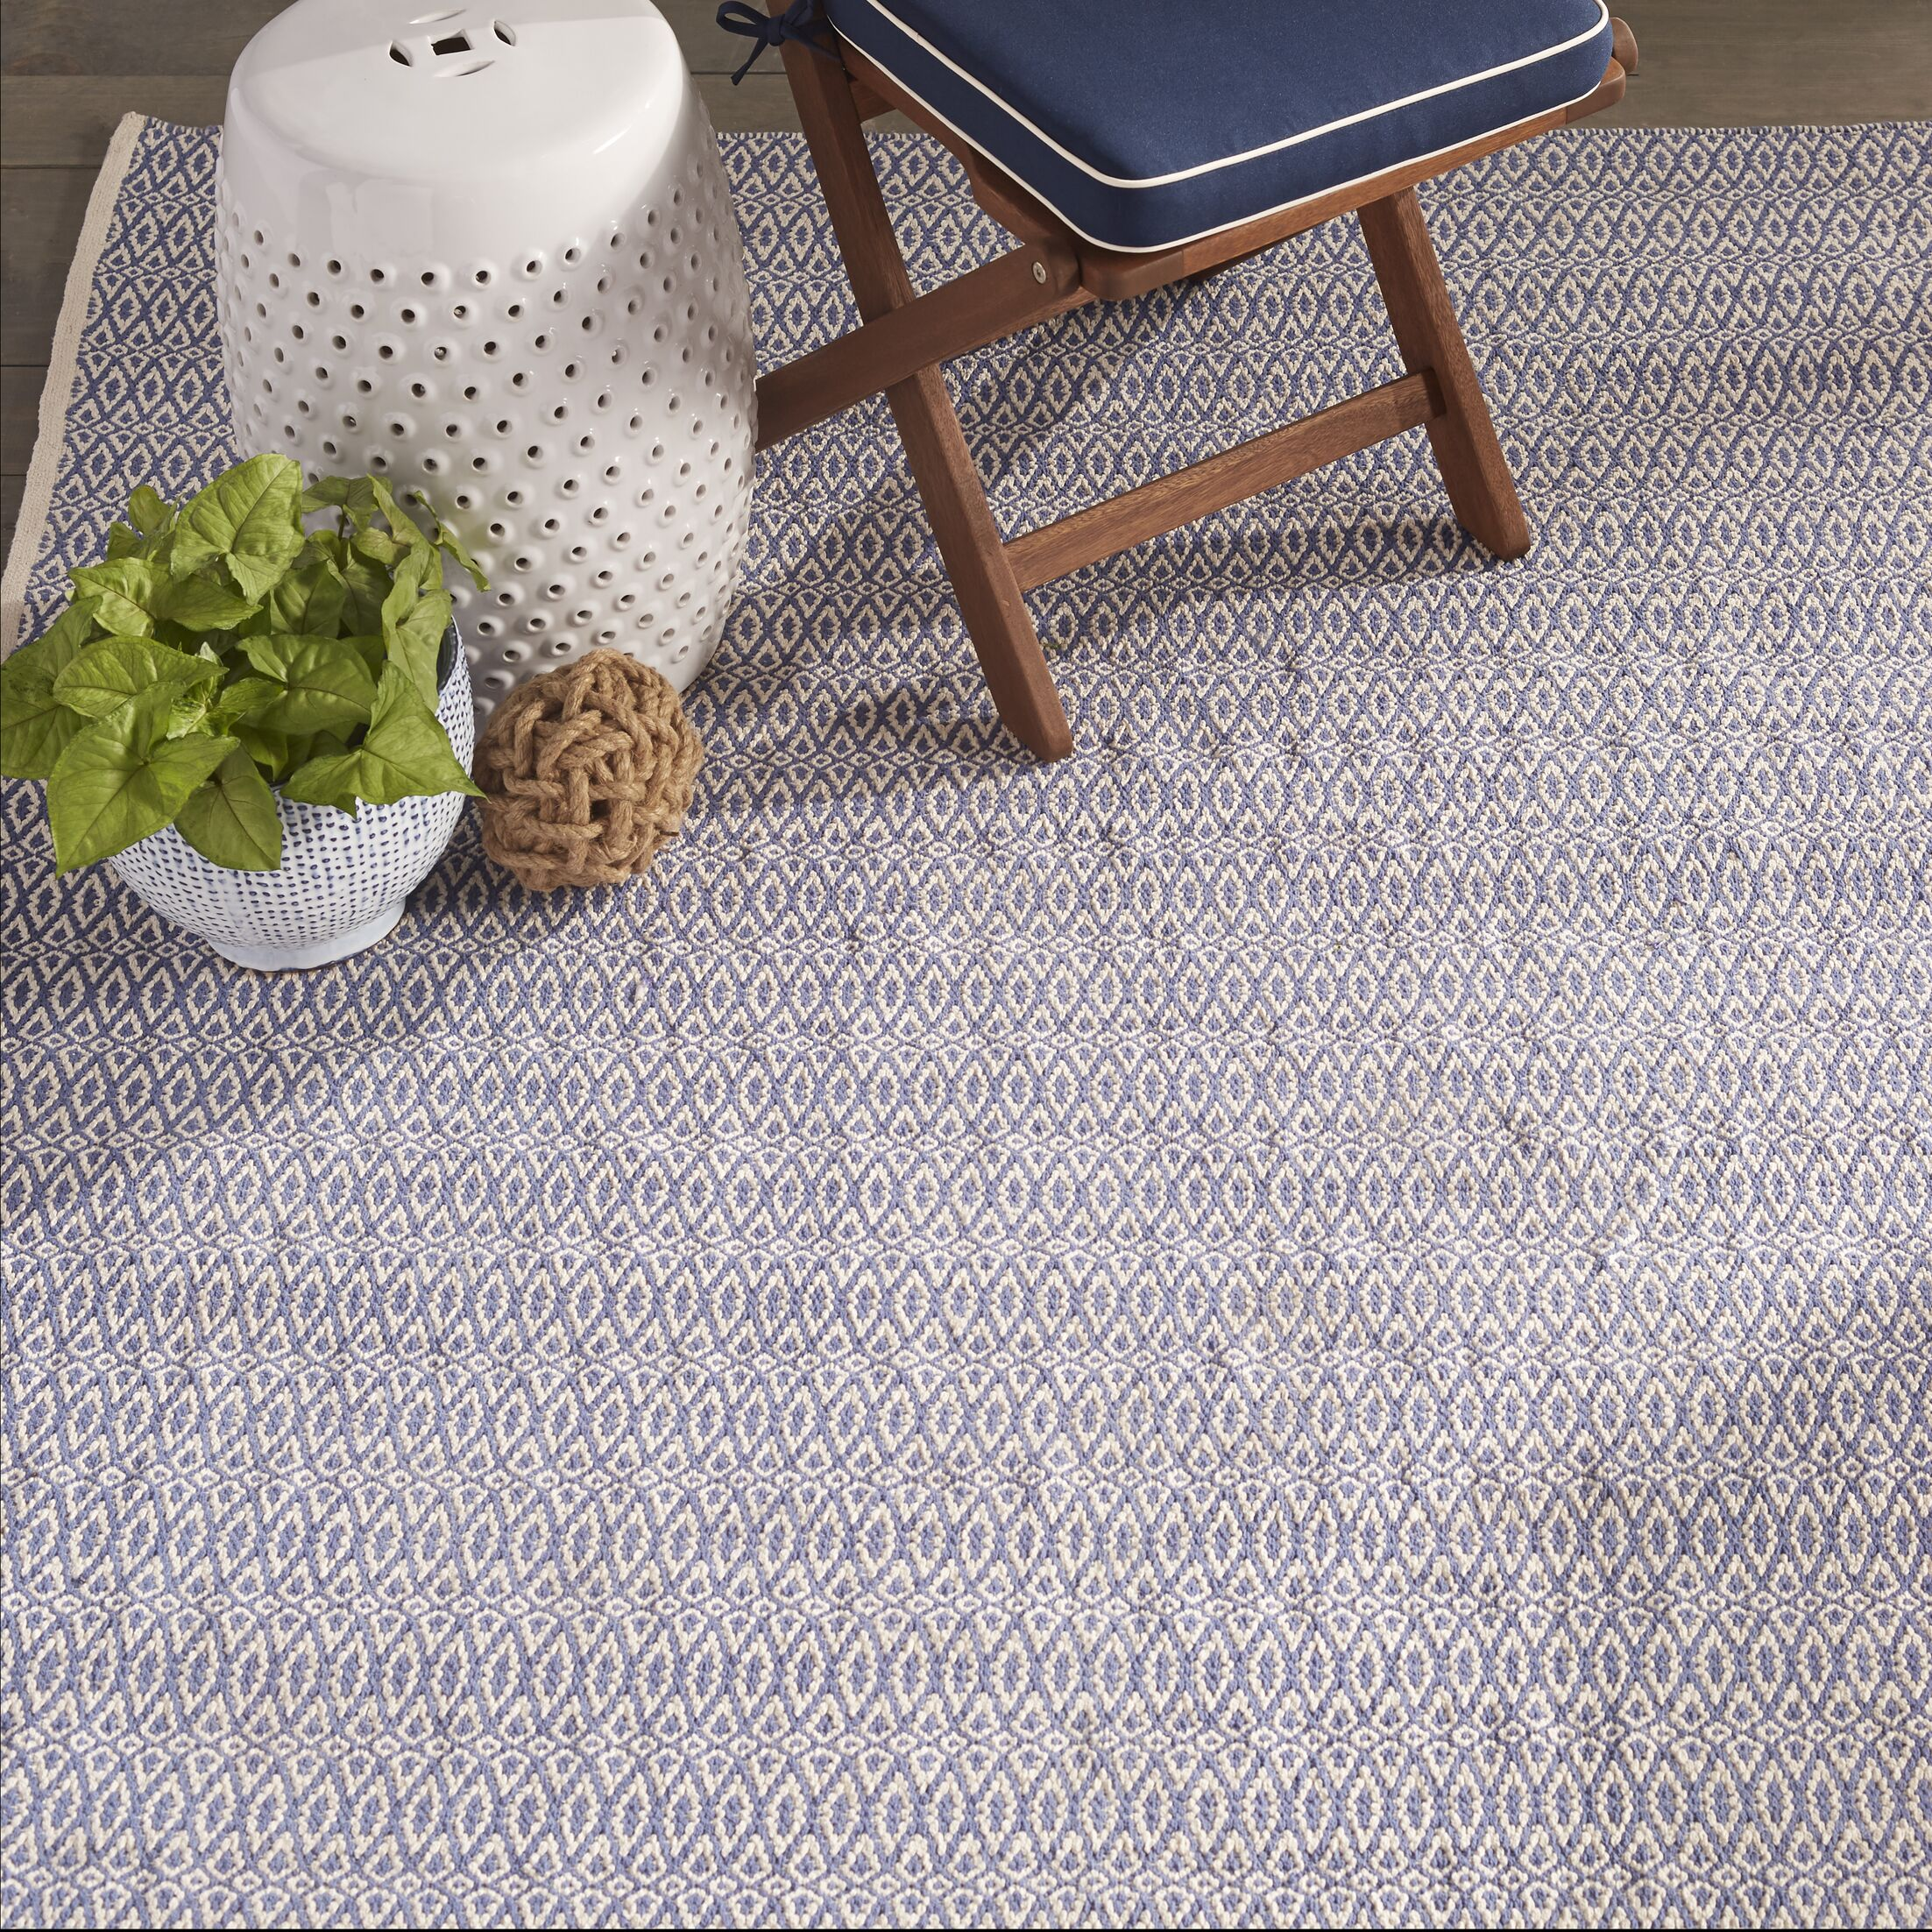 Fair Isle French Hand-Woven Cotton Blue/Ivory Area Rug Rug Size: Rectangle 6' x 9'